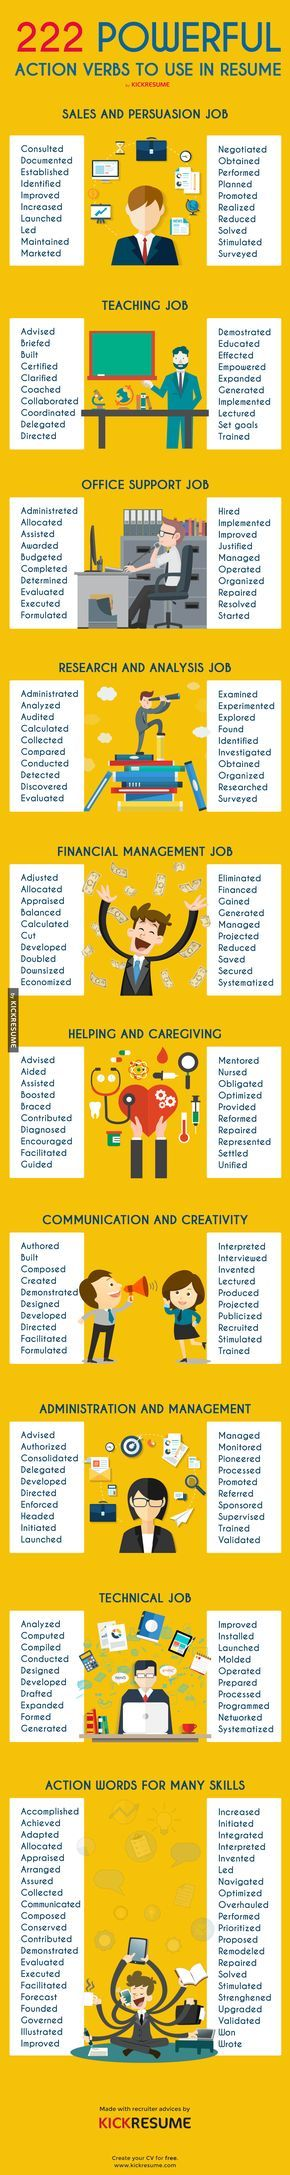 infographic   200  powerful action verbs perfect for your